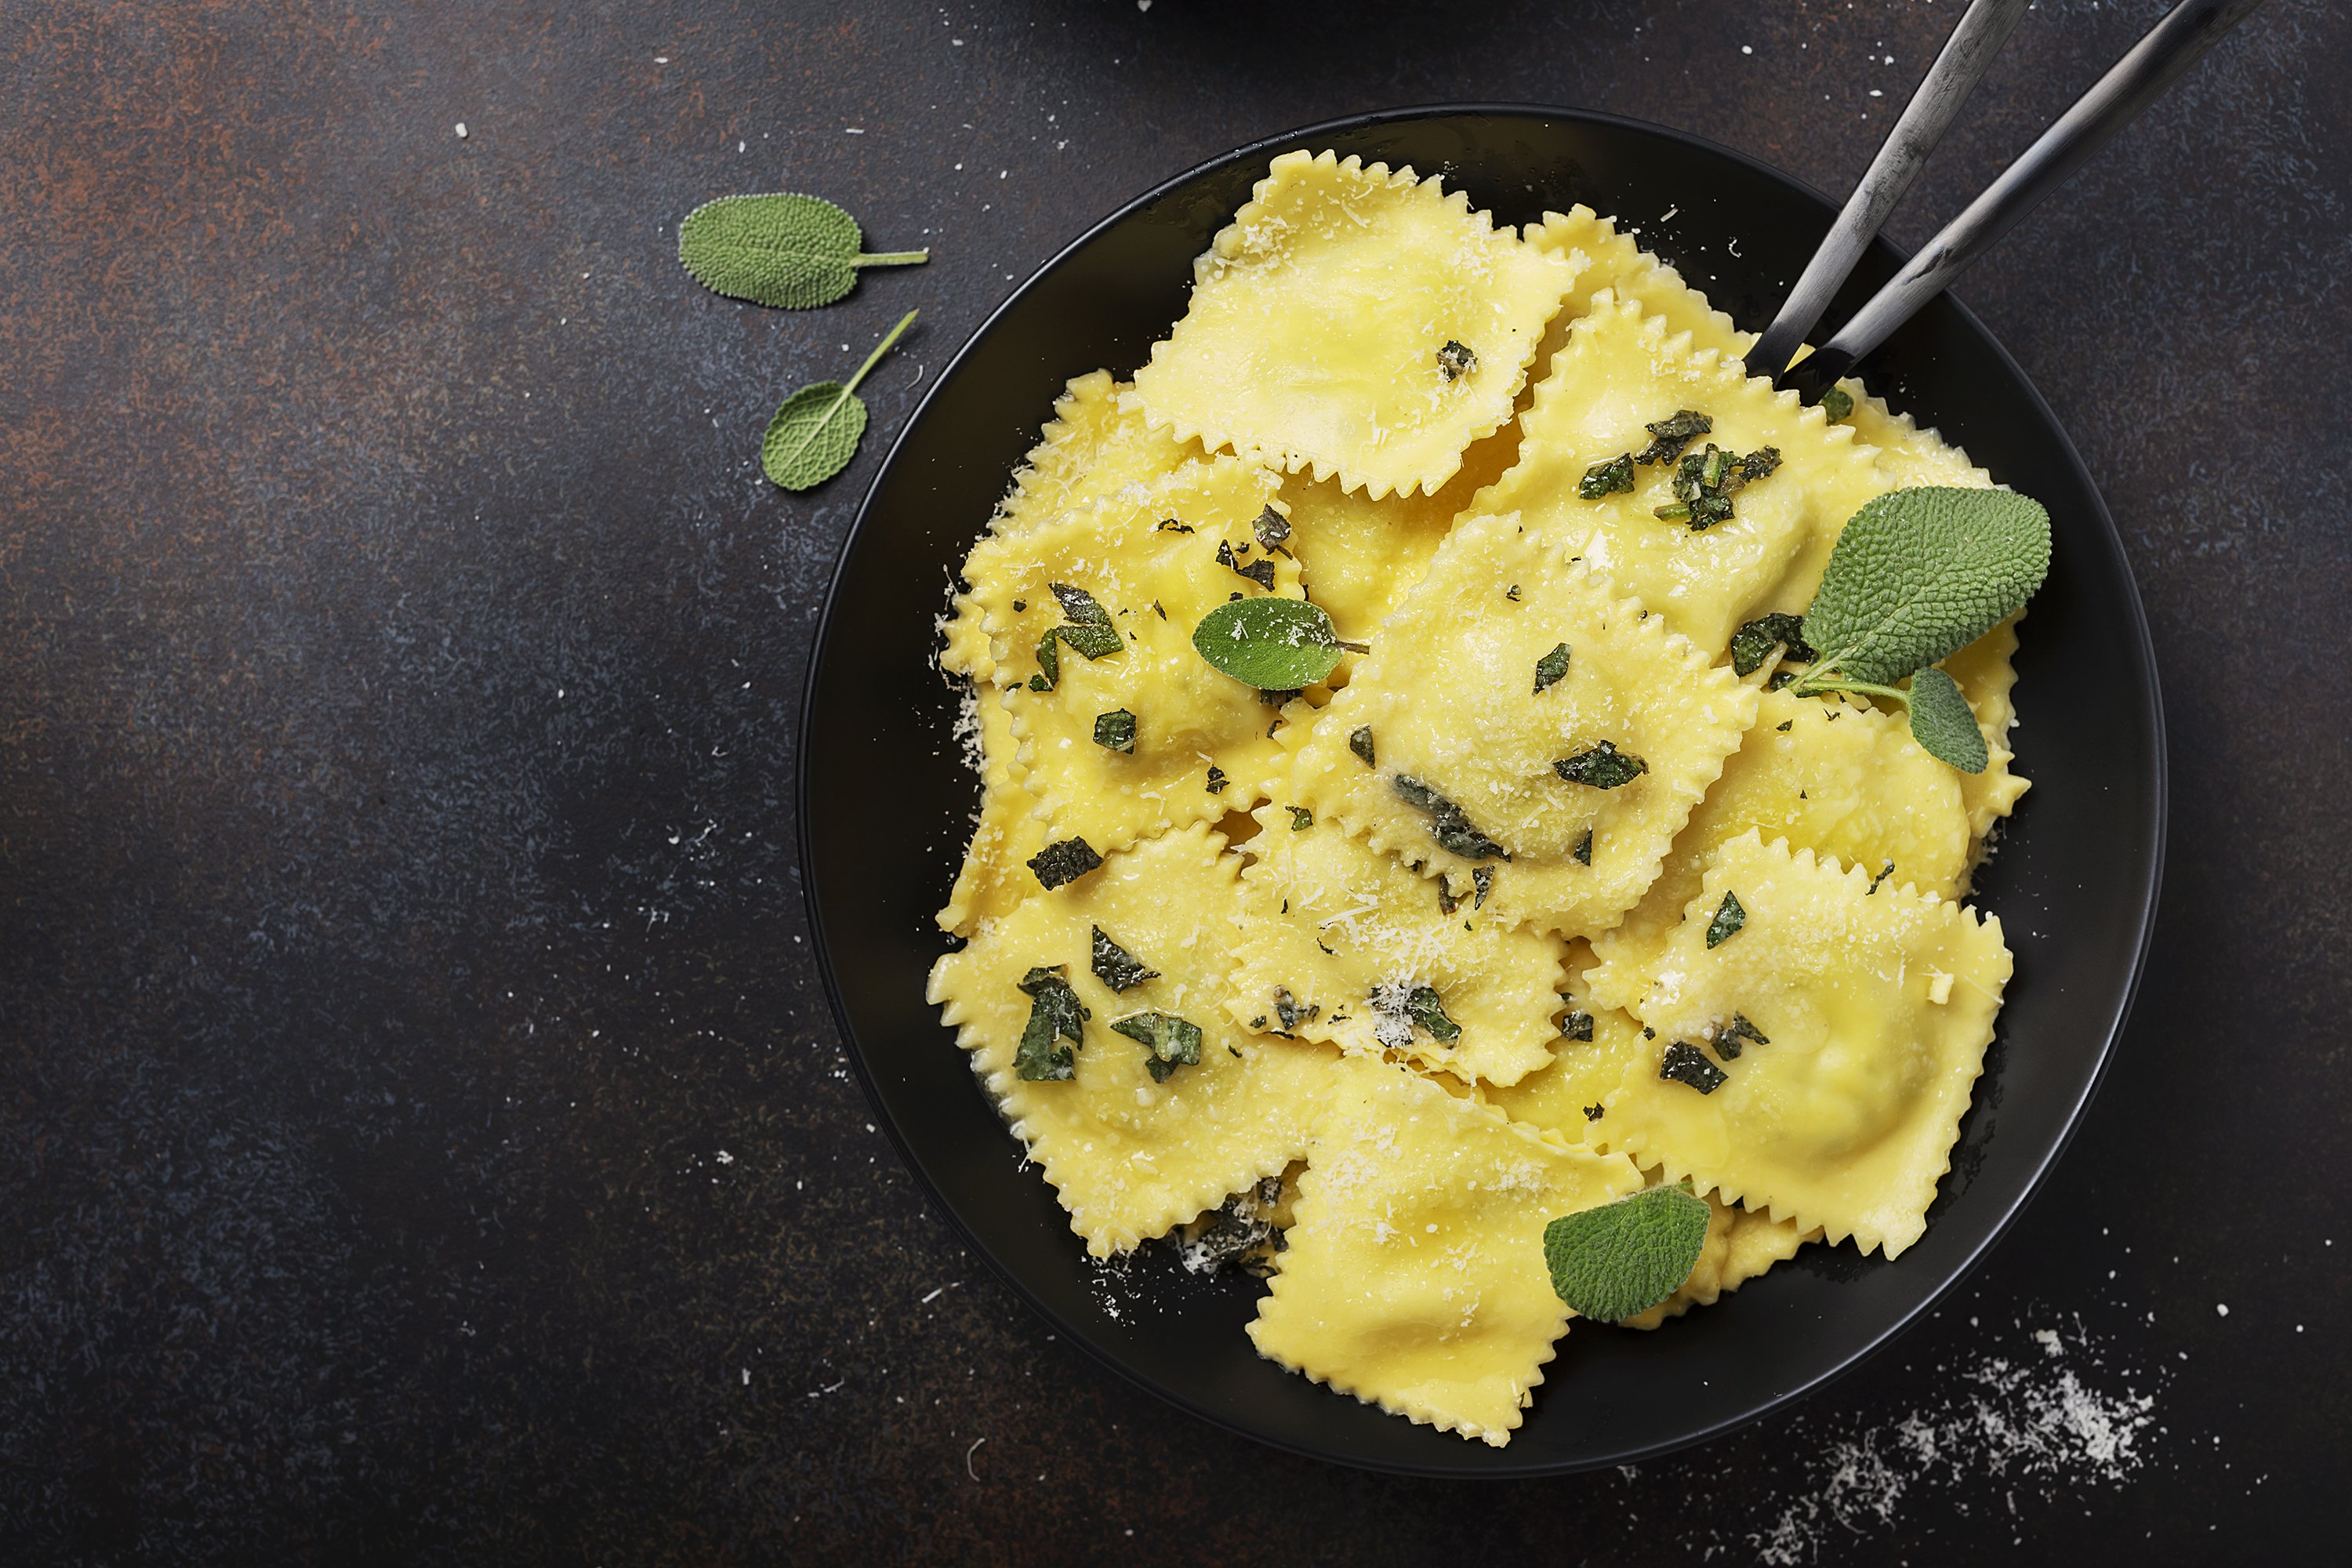 Top down view of a traditional Italian ravioli with butter example image 1